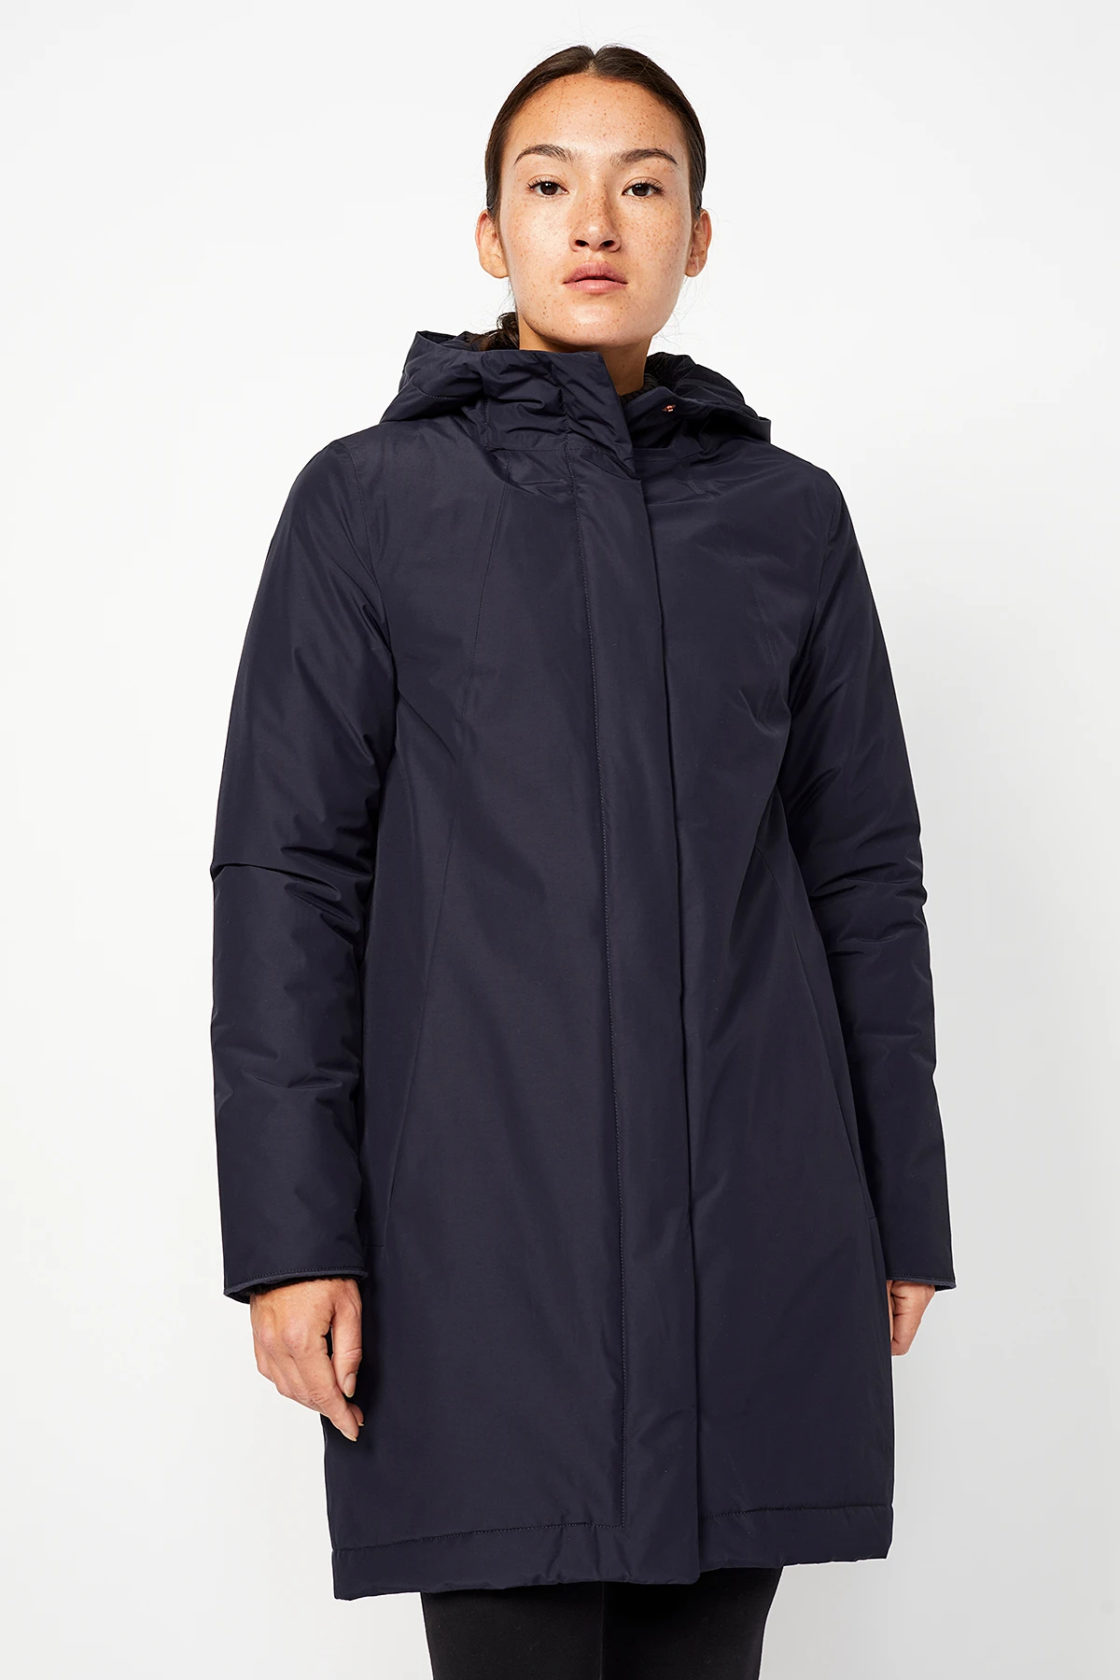 Roberta Organic Fashion Langerchen Coat Ariza Navy 4